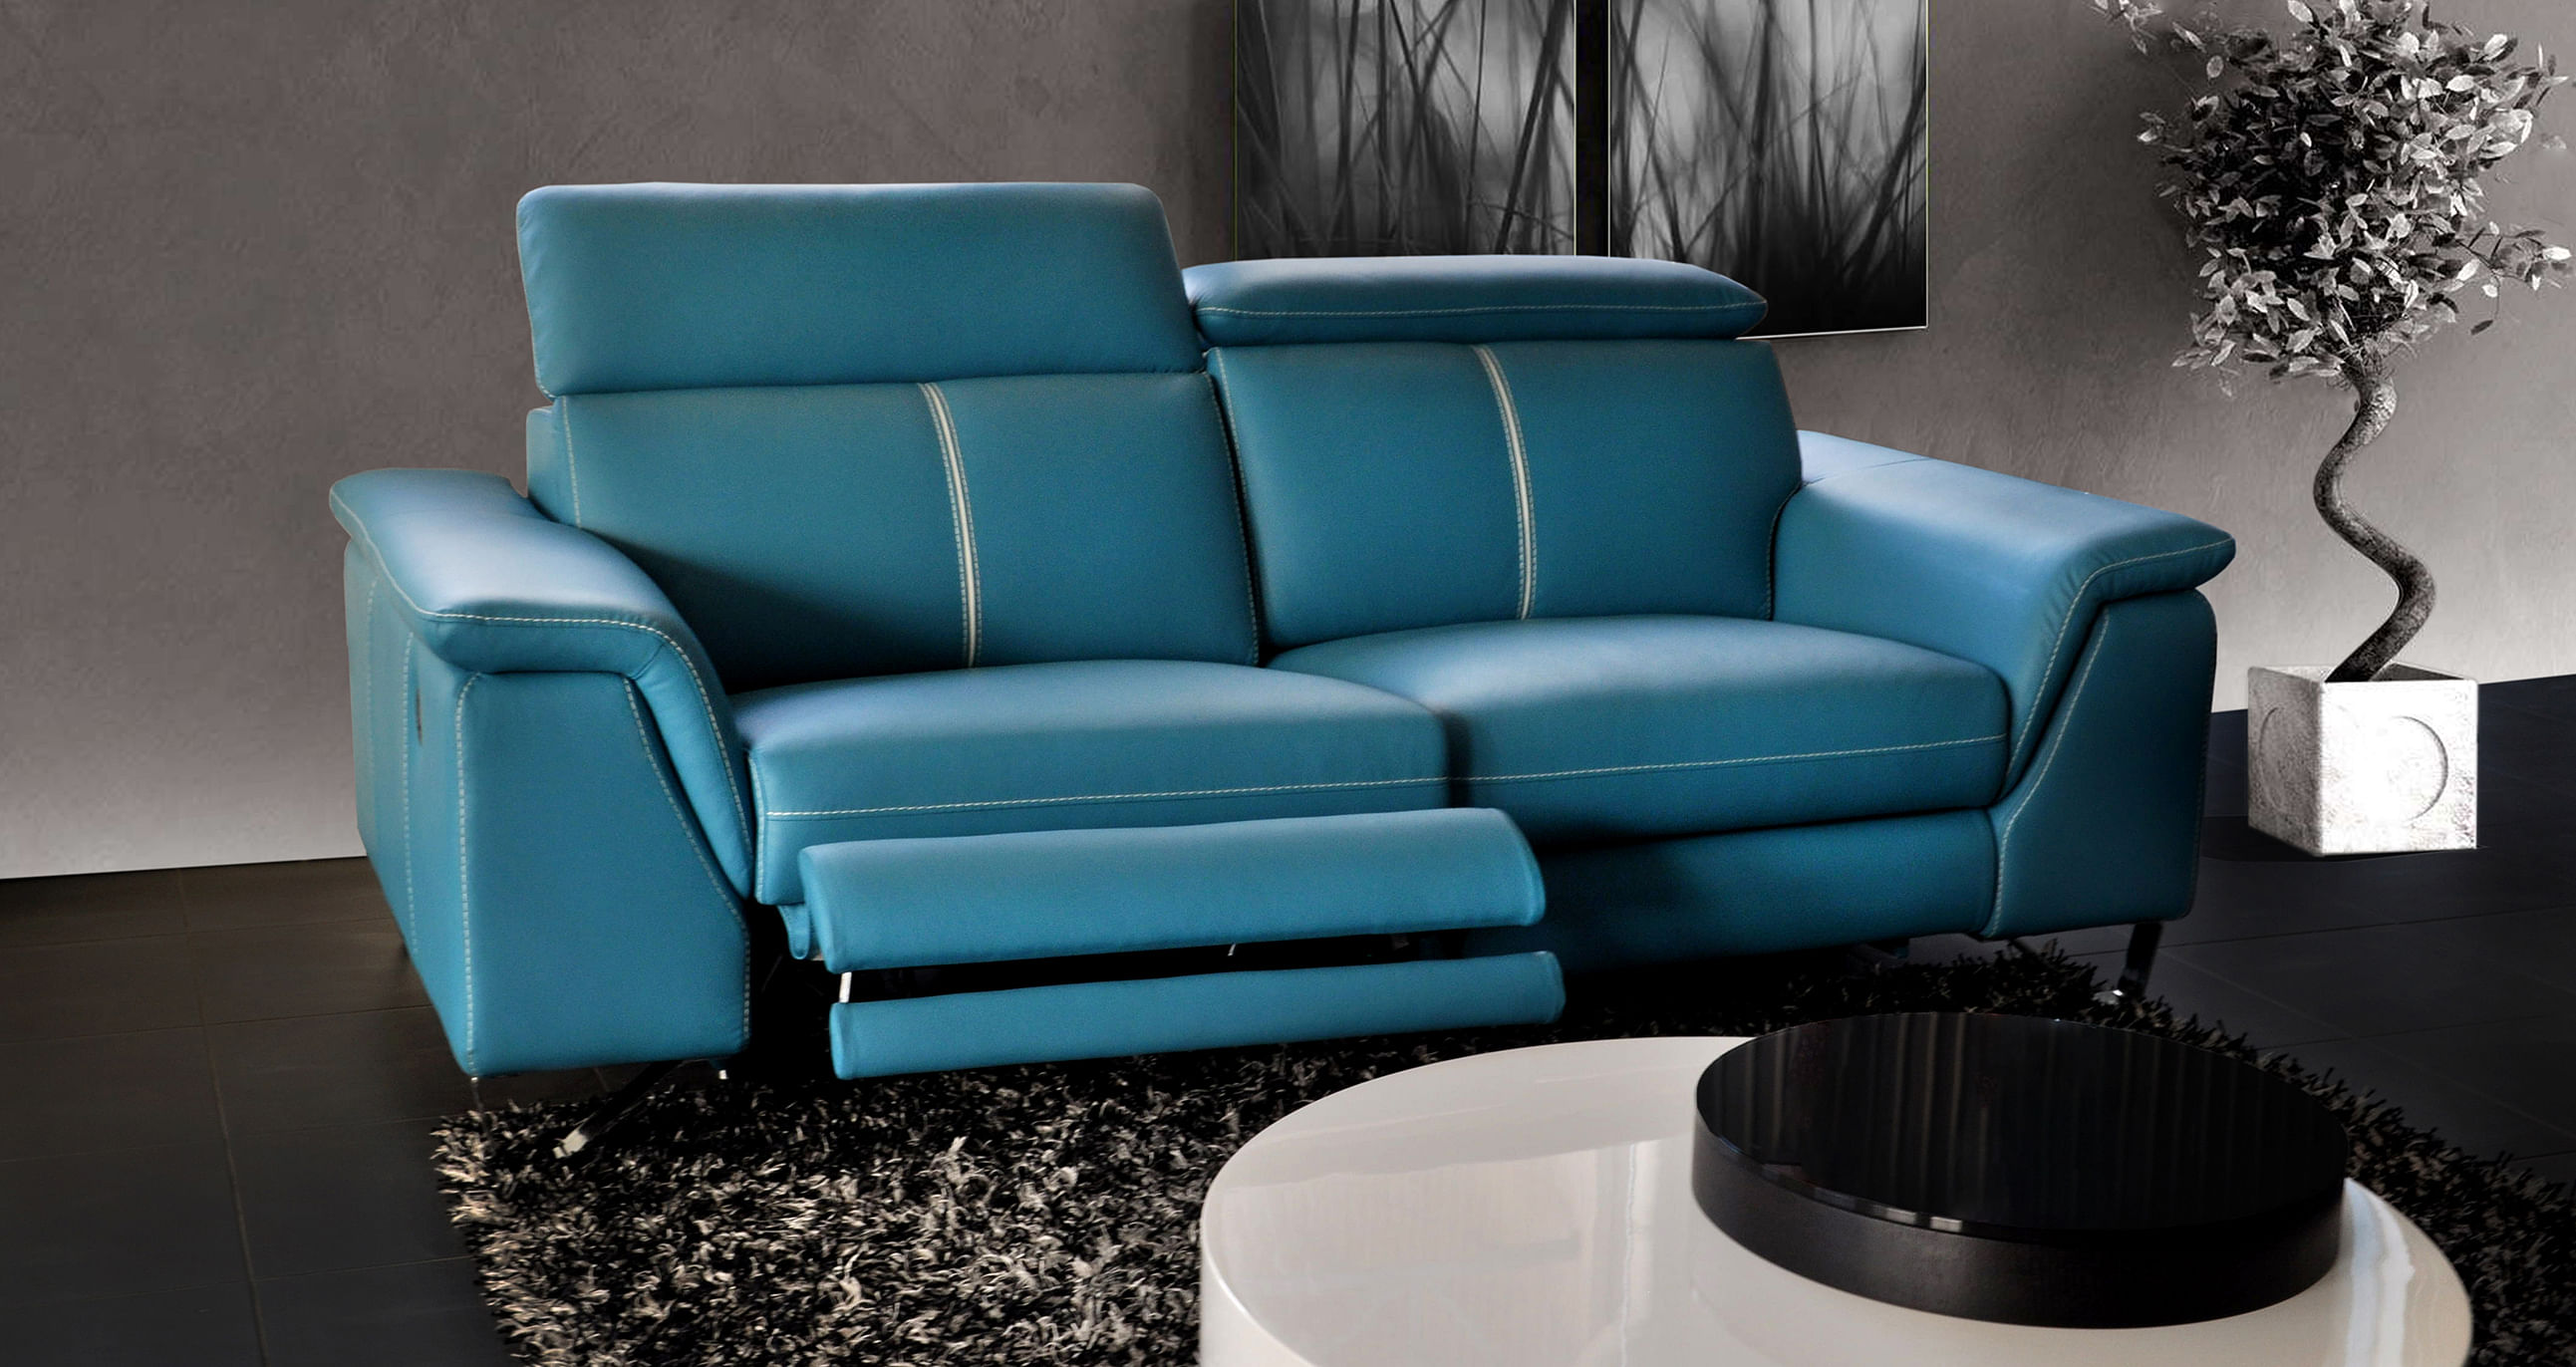 Be Different – Make Your Living Room Unique With These Leather Sofas In Bold Colours! - Home & Decor Singapore